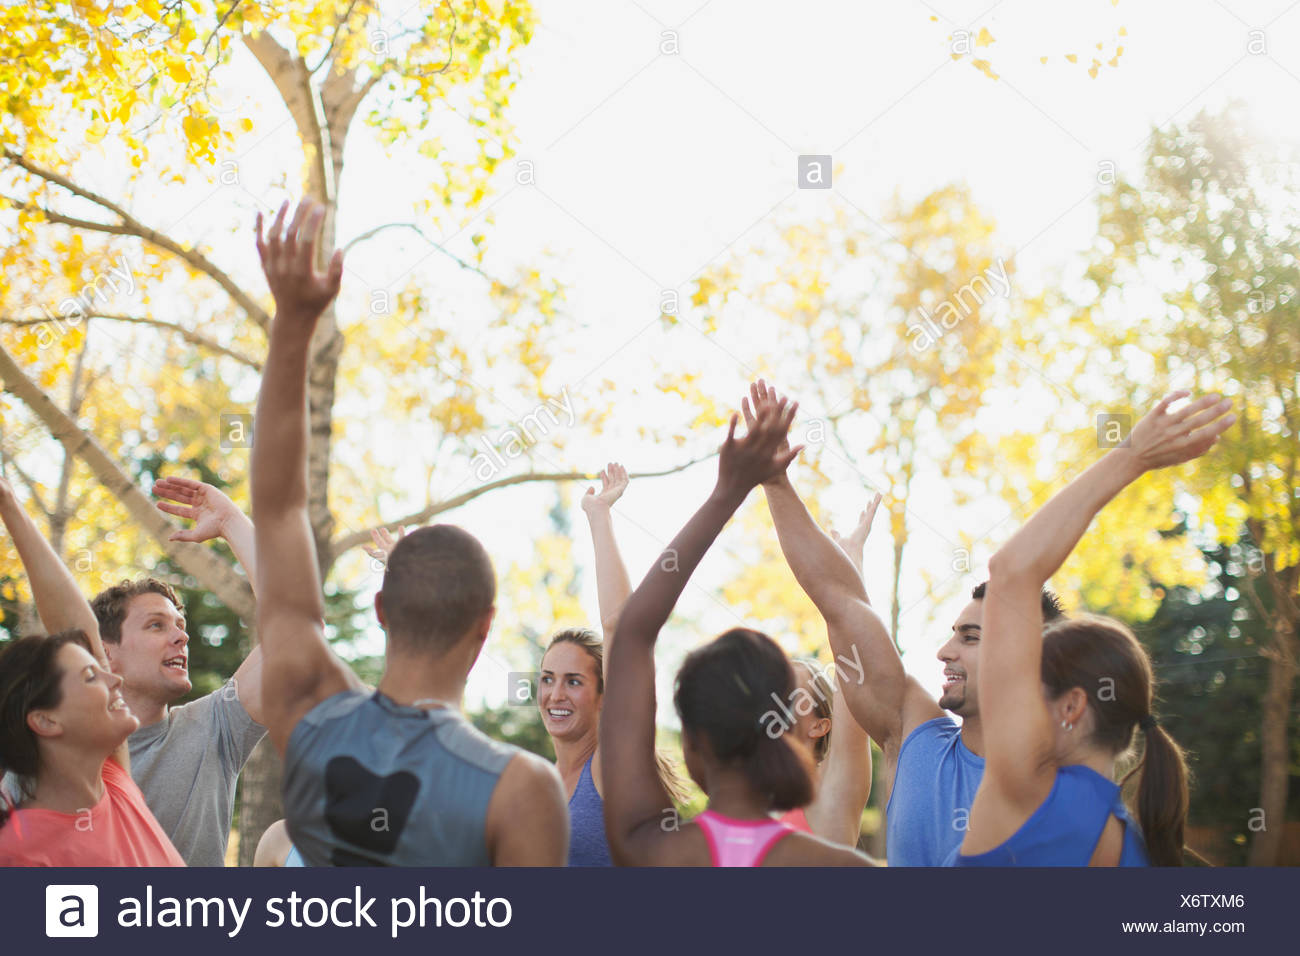 Fitness class giving each other a high five after class. - Stock Image